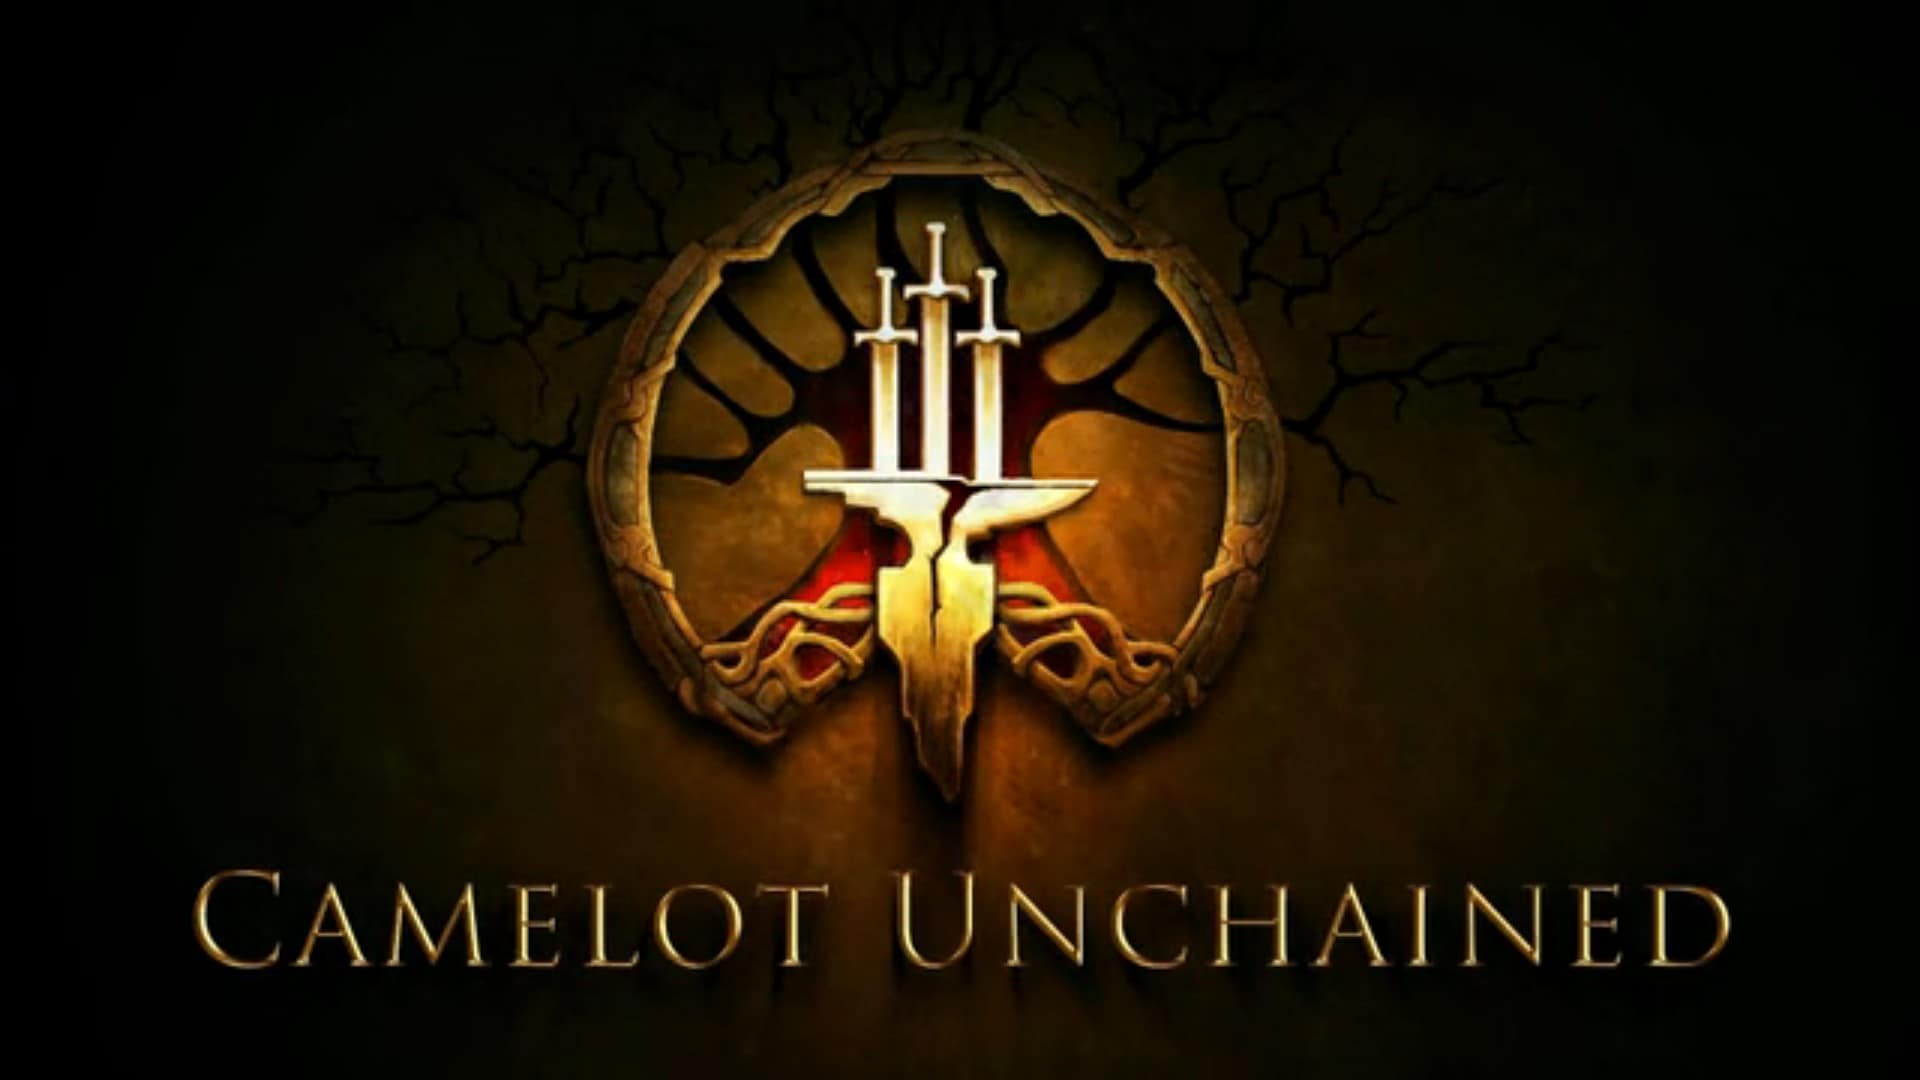 Camelot Unchained News